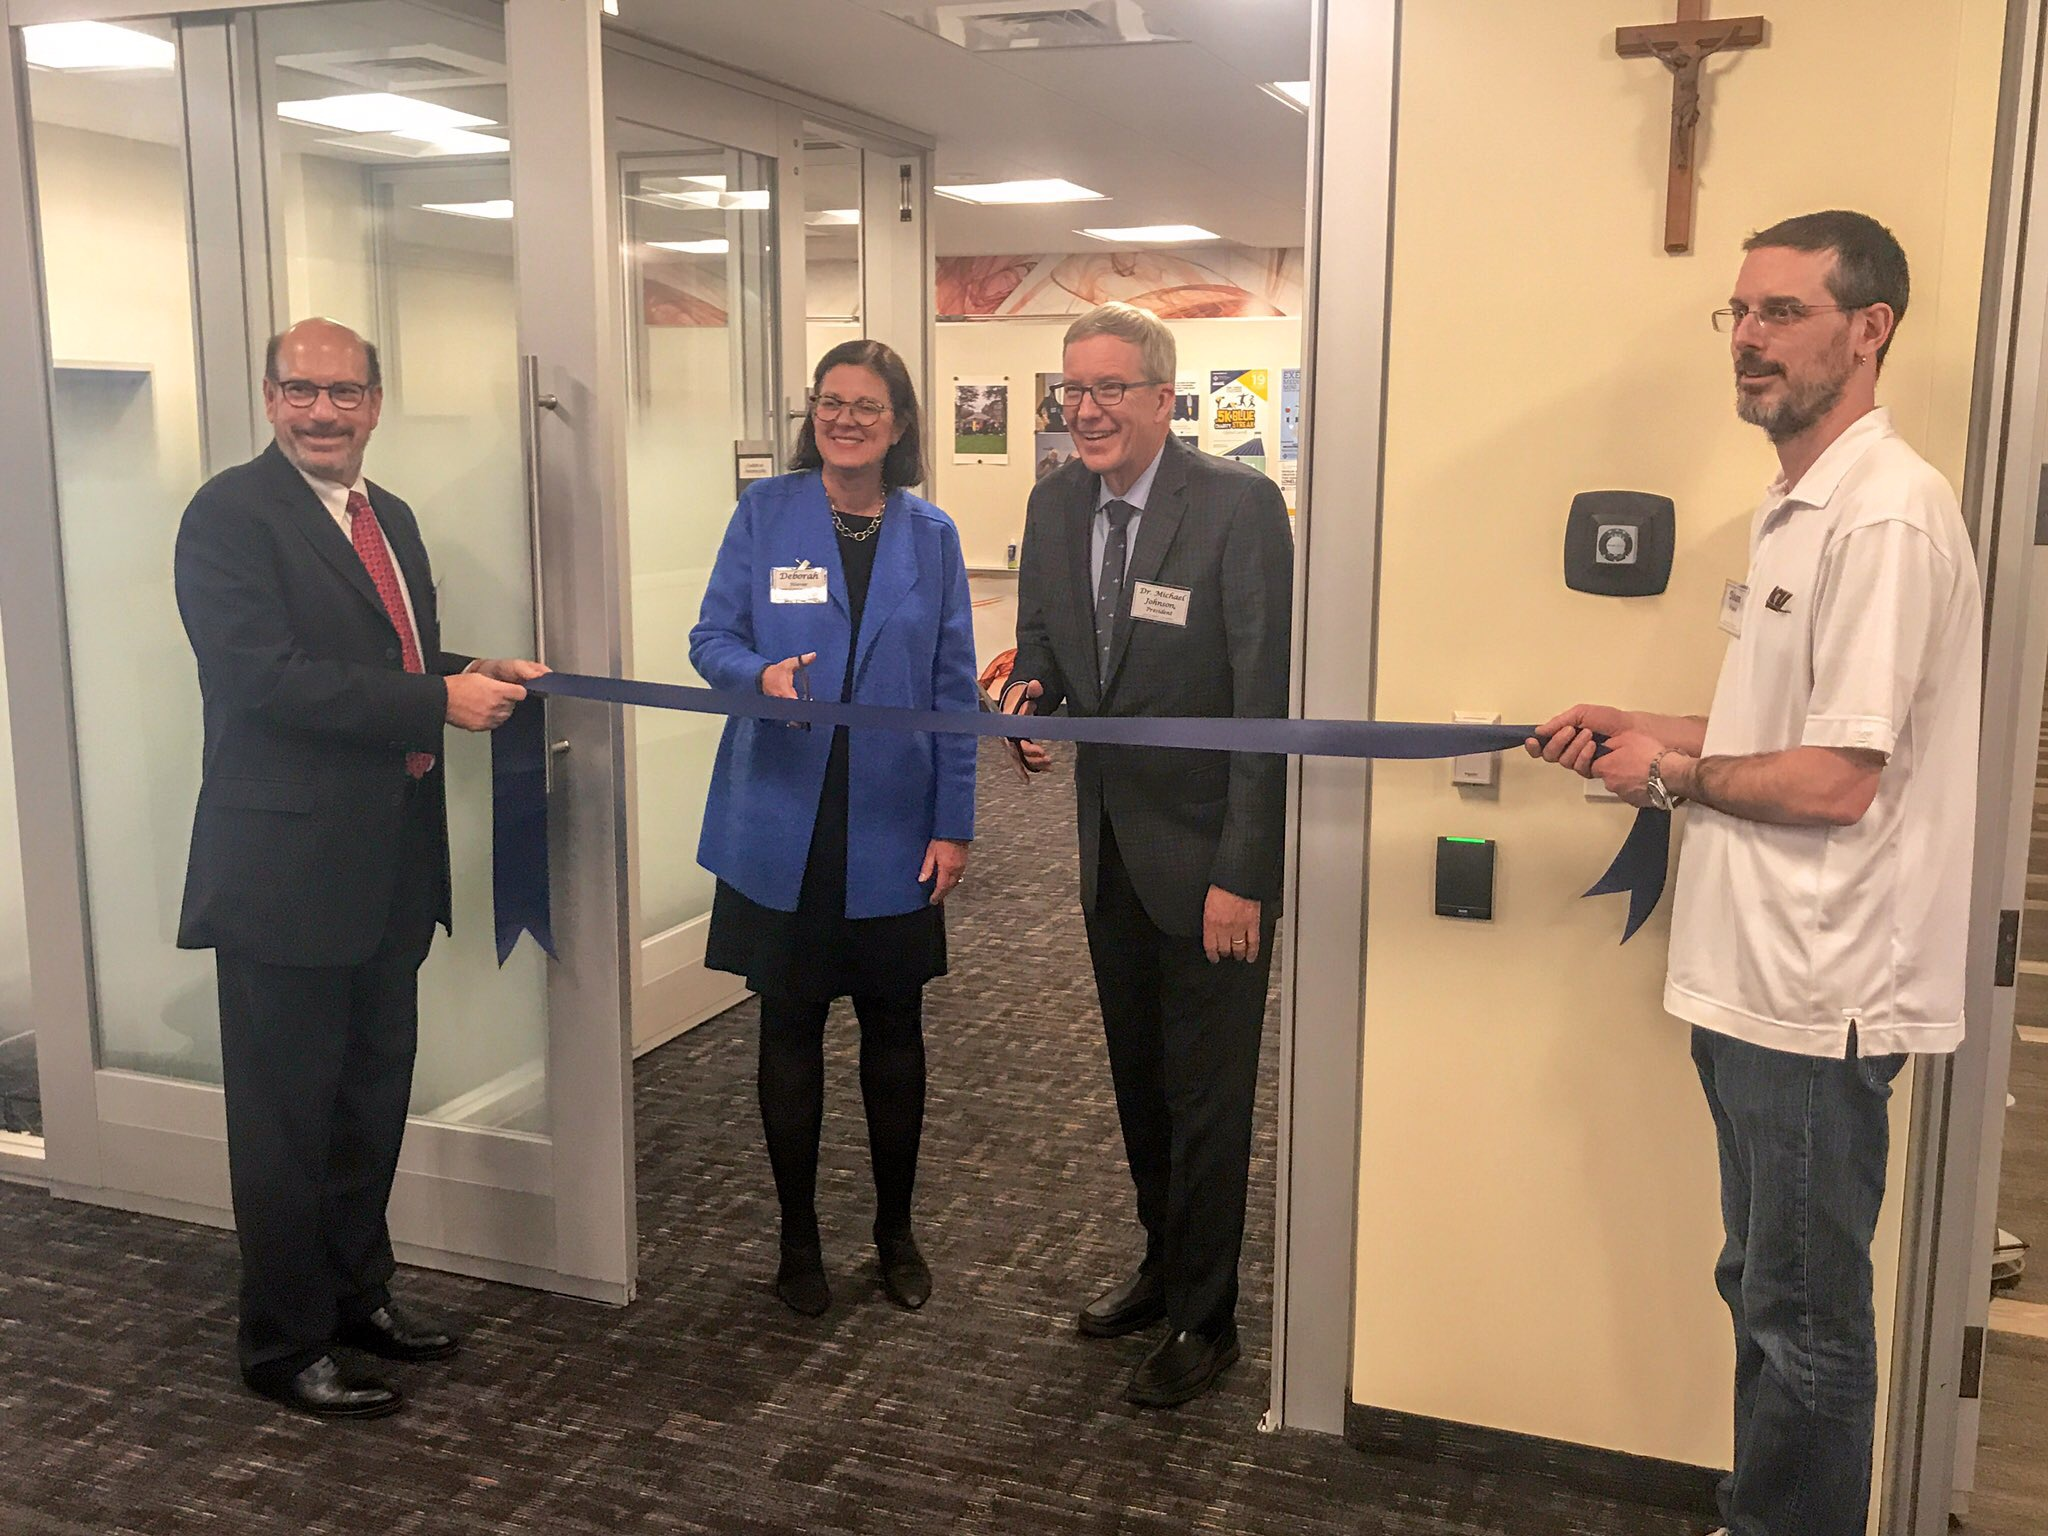 Dr. Johnson and Deborah Hoover cut the ribbon on the LaunchNET classroom at JCU.